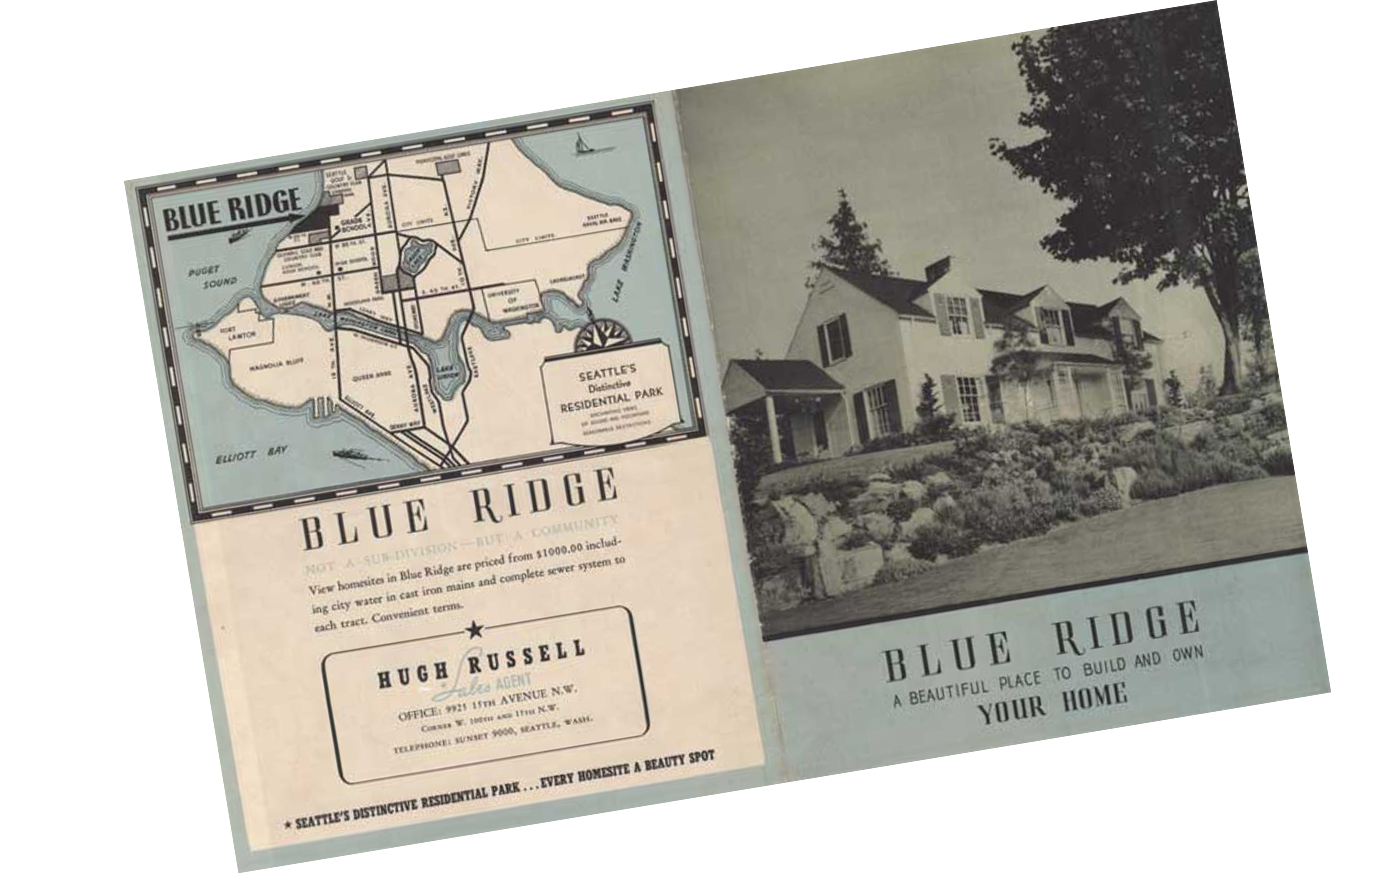 Brochure from the early days of Blue Ridge.